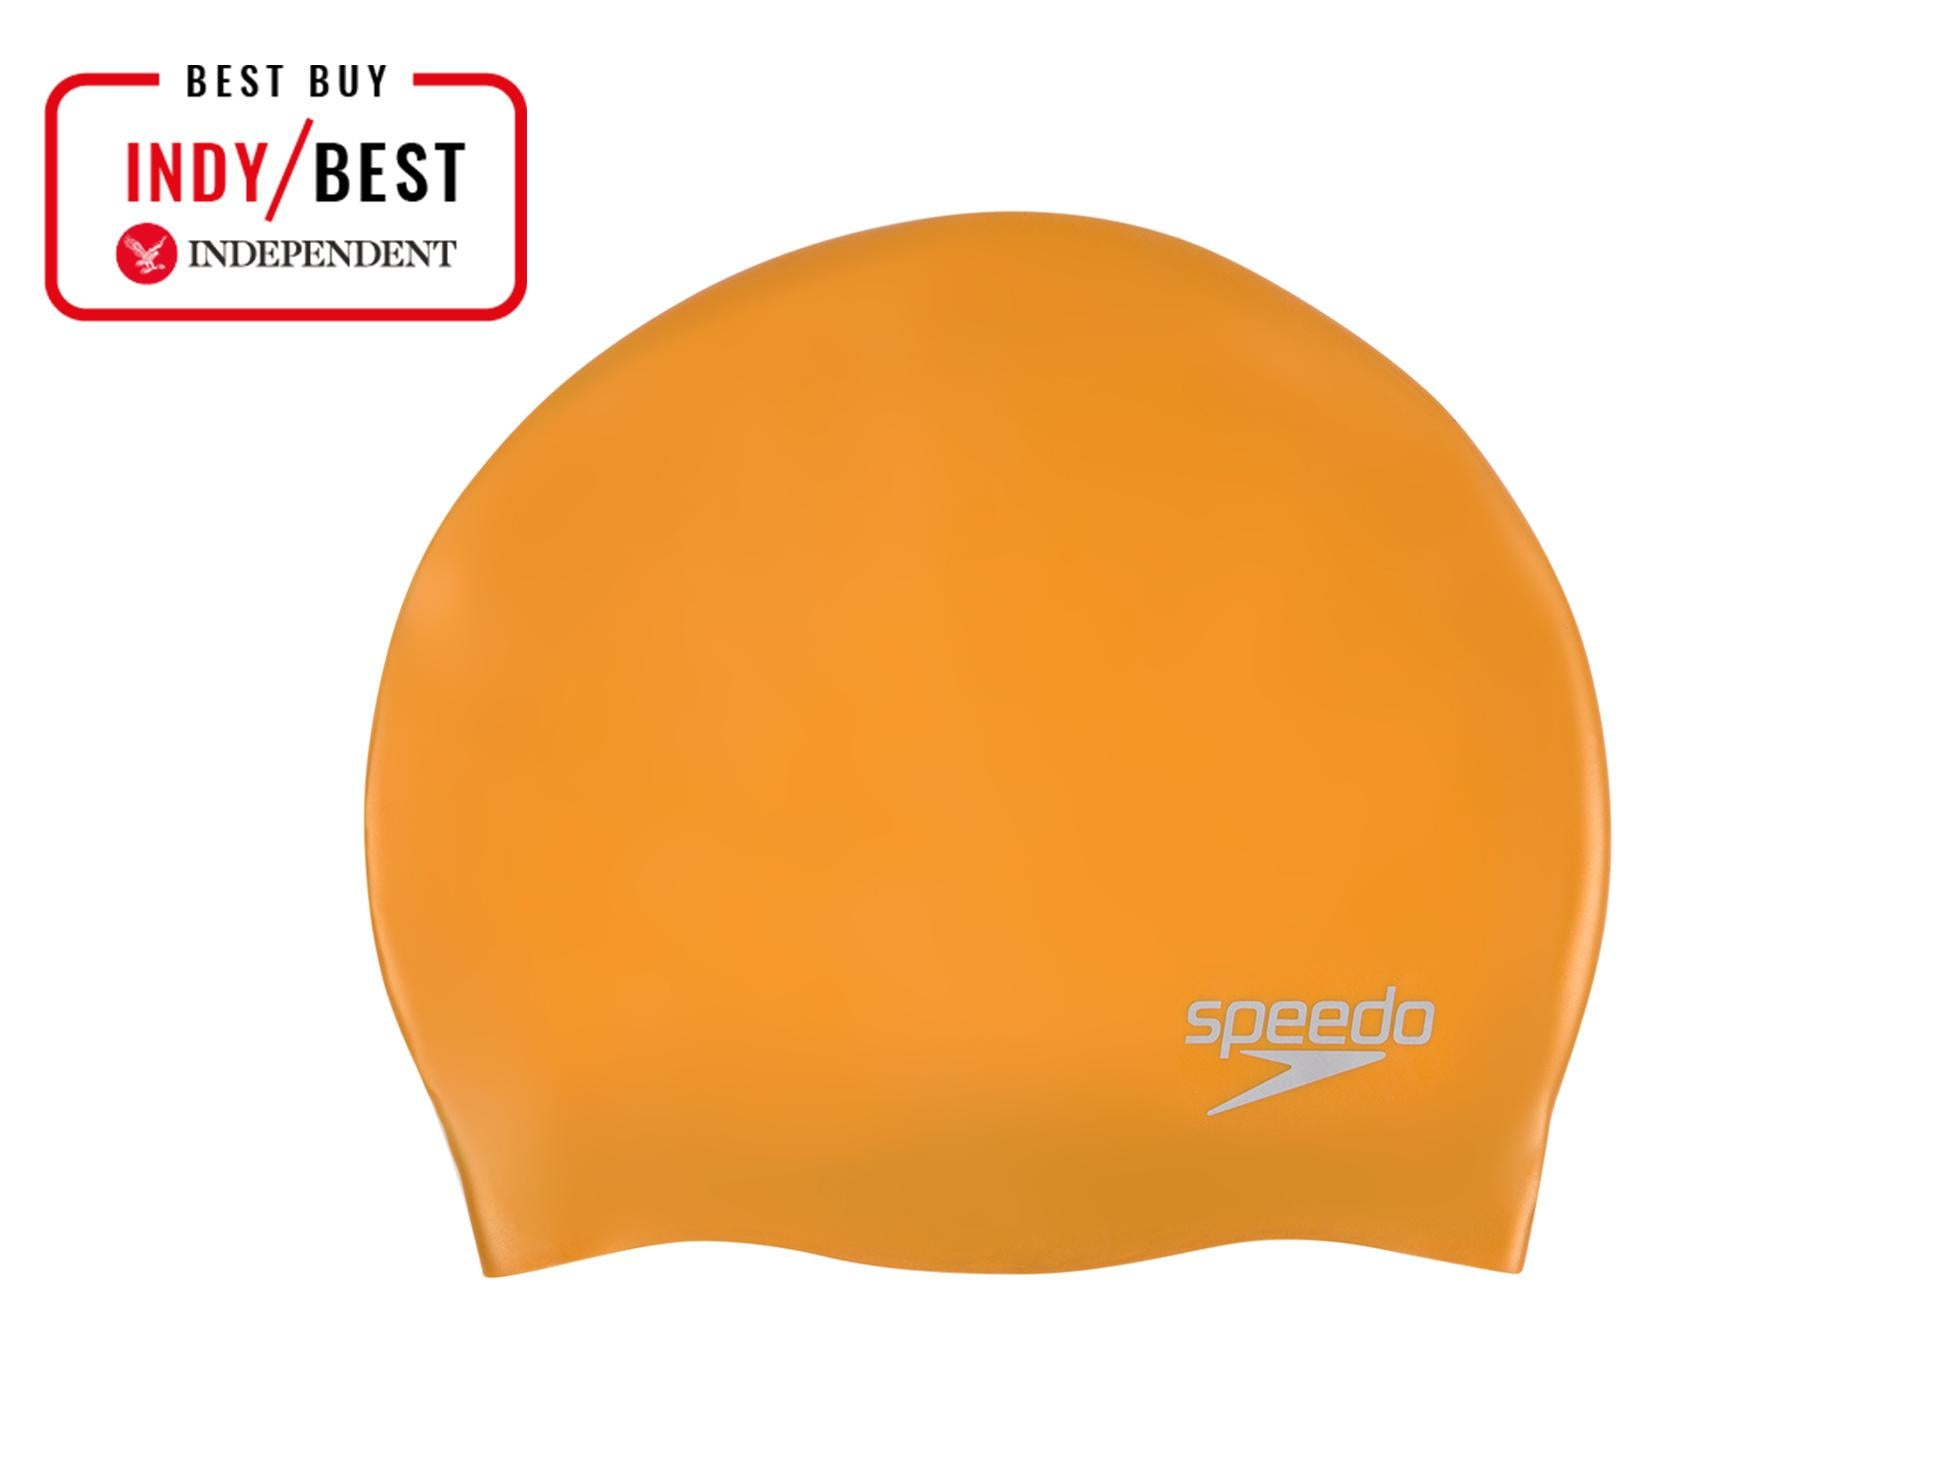 06615fd3704 Speedo Plain Moulded Silicone Cap: £9, Speedo